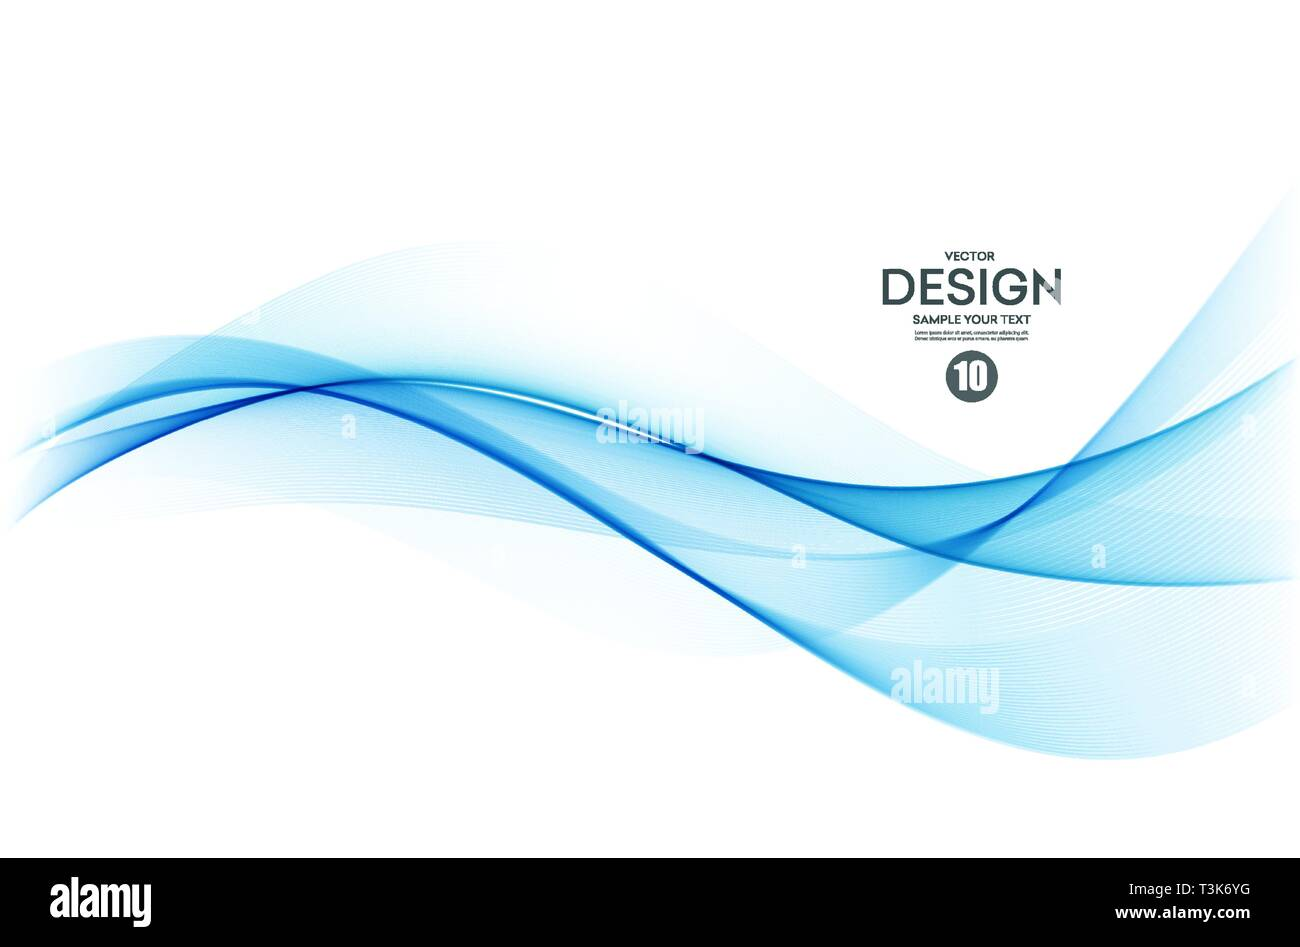 Abstract colorful vector background, color wave for design brochure, website, flyer. - Stock Vector